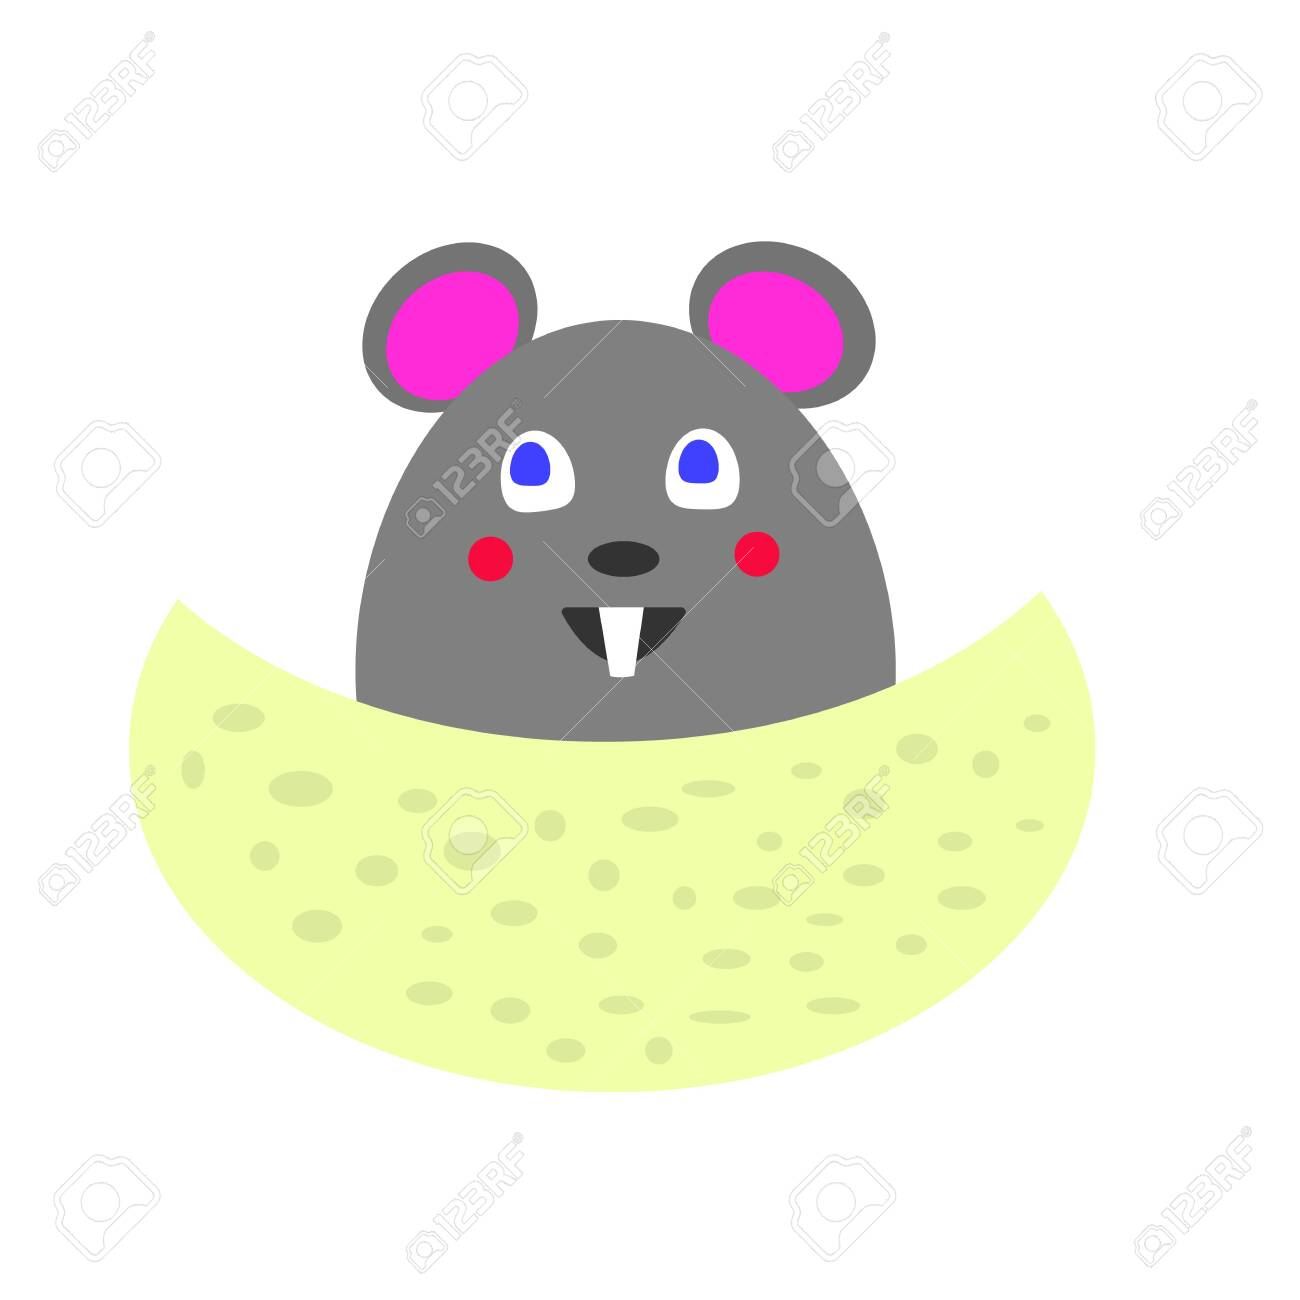 cartoon gray mouse for a piece of cheese with holes the concept of cute and pet - 130541543